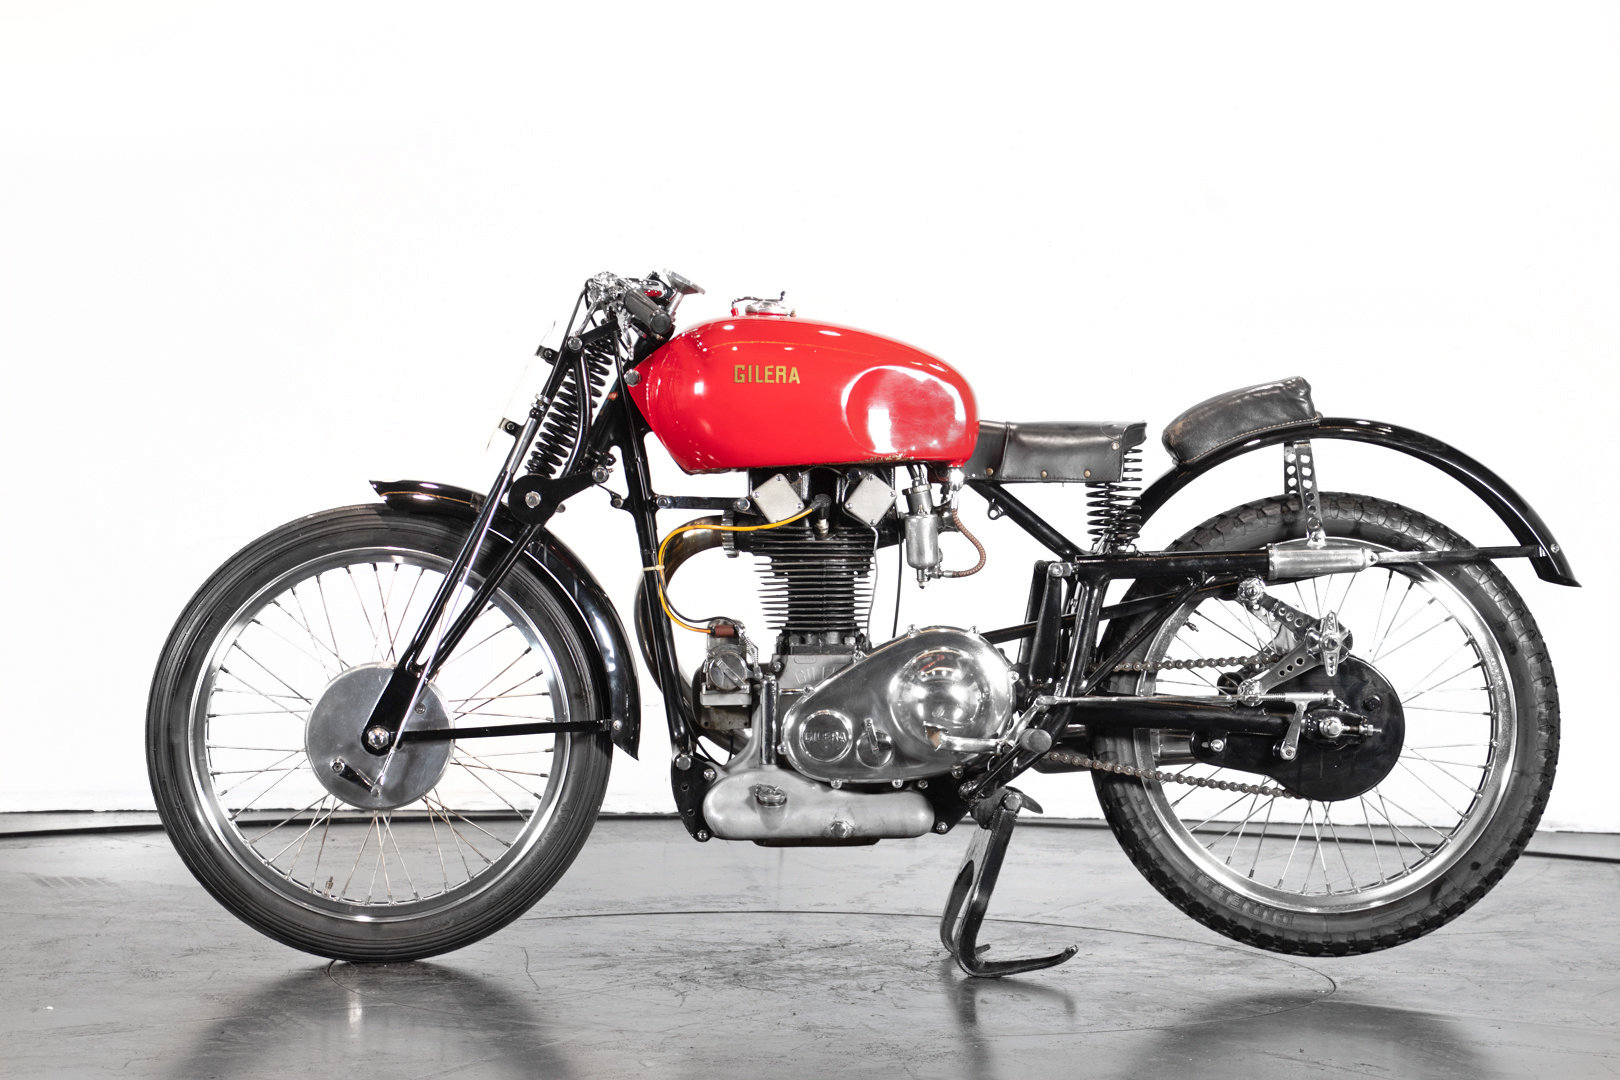 GILERA - 500 8 BULLONI - 1940 For Sale (picture 1 of 6)